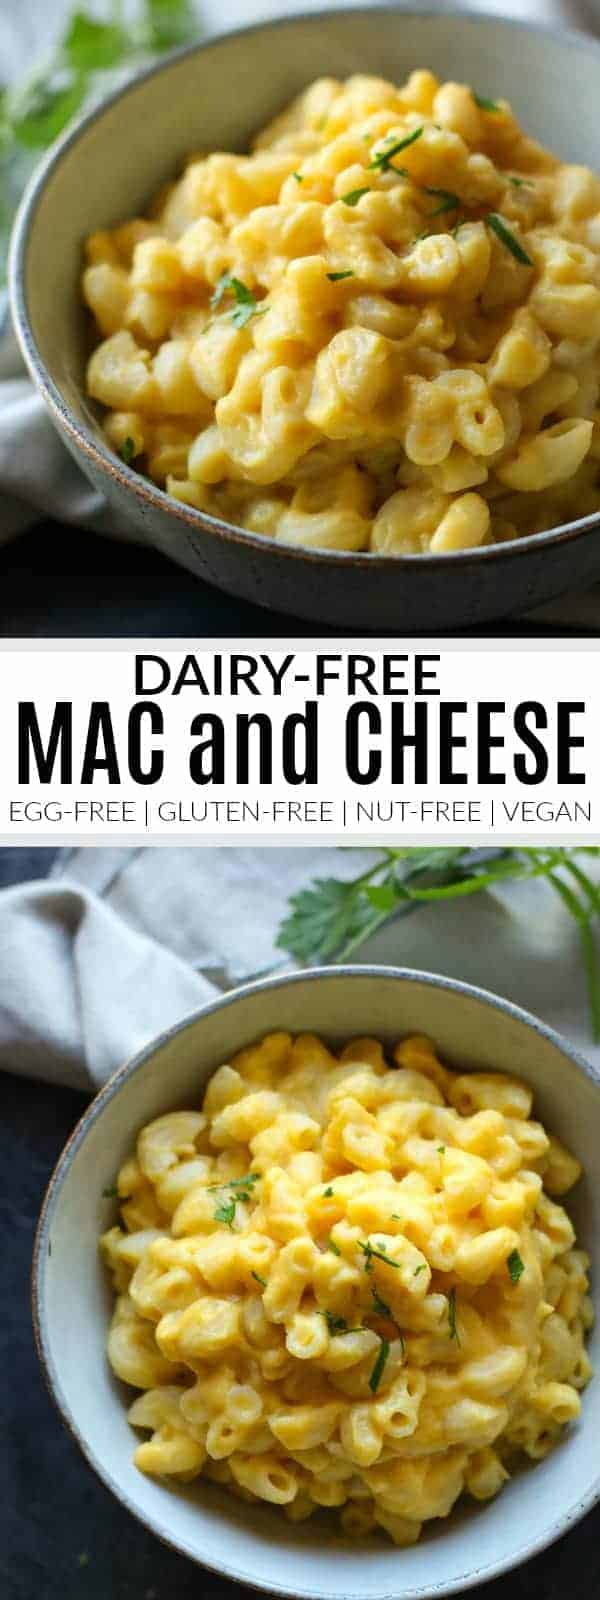 Dairy-free Mac and Cheese | egg free macaroni and cheese | gluten-free macaroni and cheese | nut-free macaroni and cheese | vegan macaroni and cheese | healthy macaroni and cheese || The Real Food Dietitians #macandcheese #dairyfreepasta #glutenfreesides